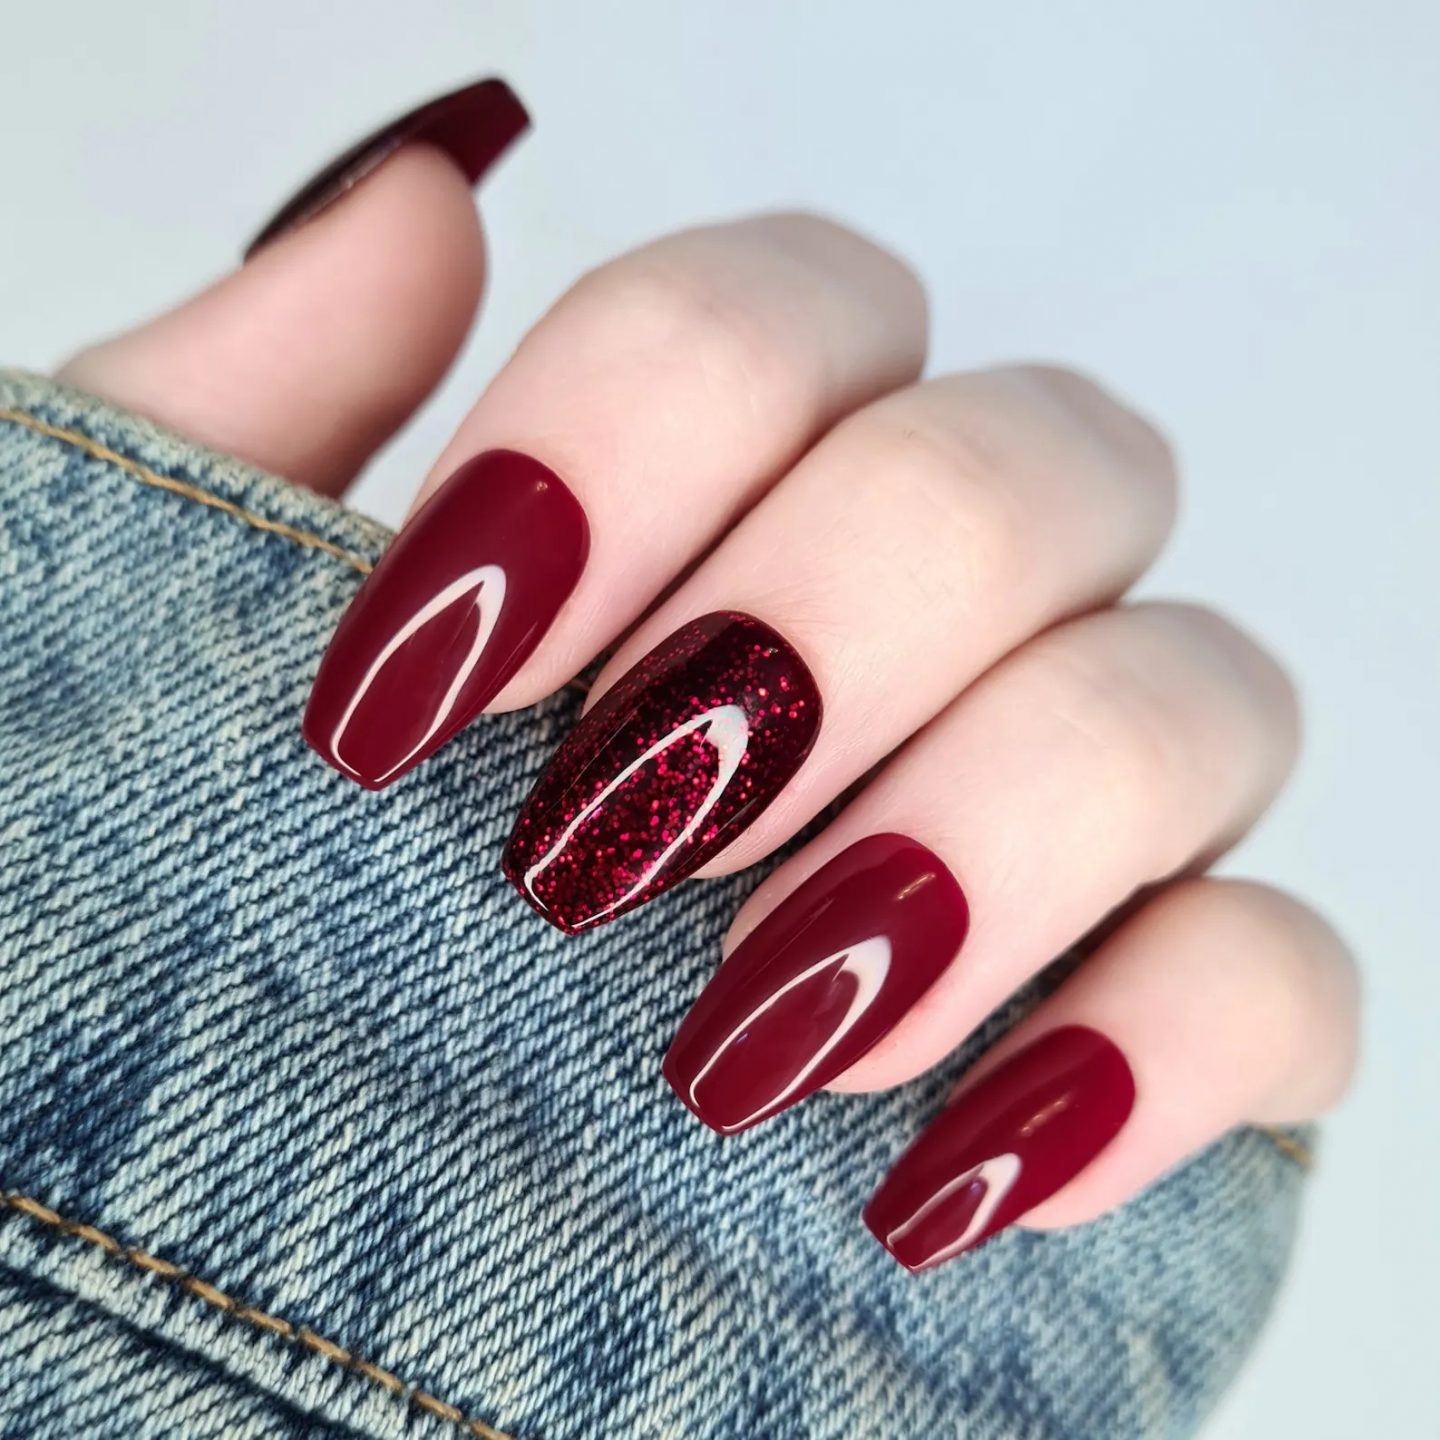 Short glossy wine red nails with glitter